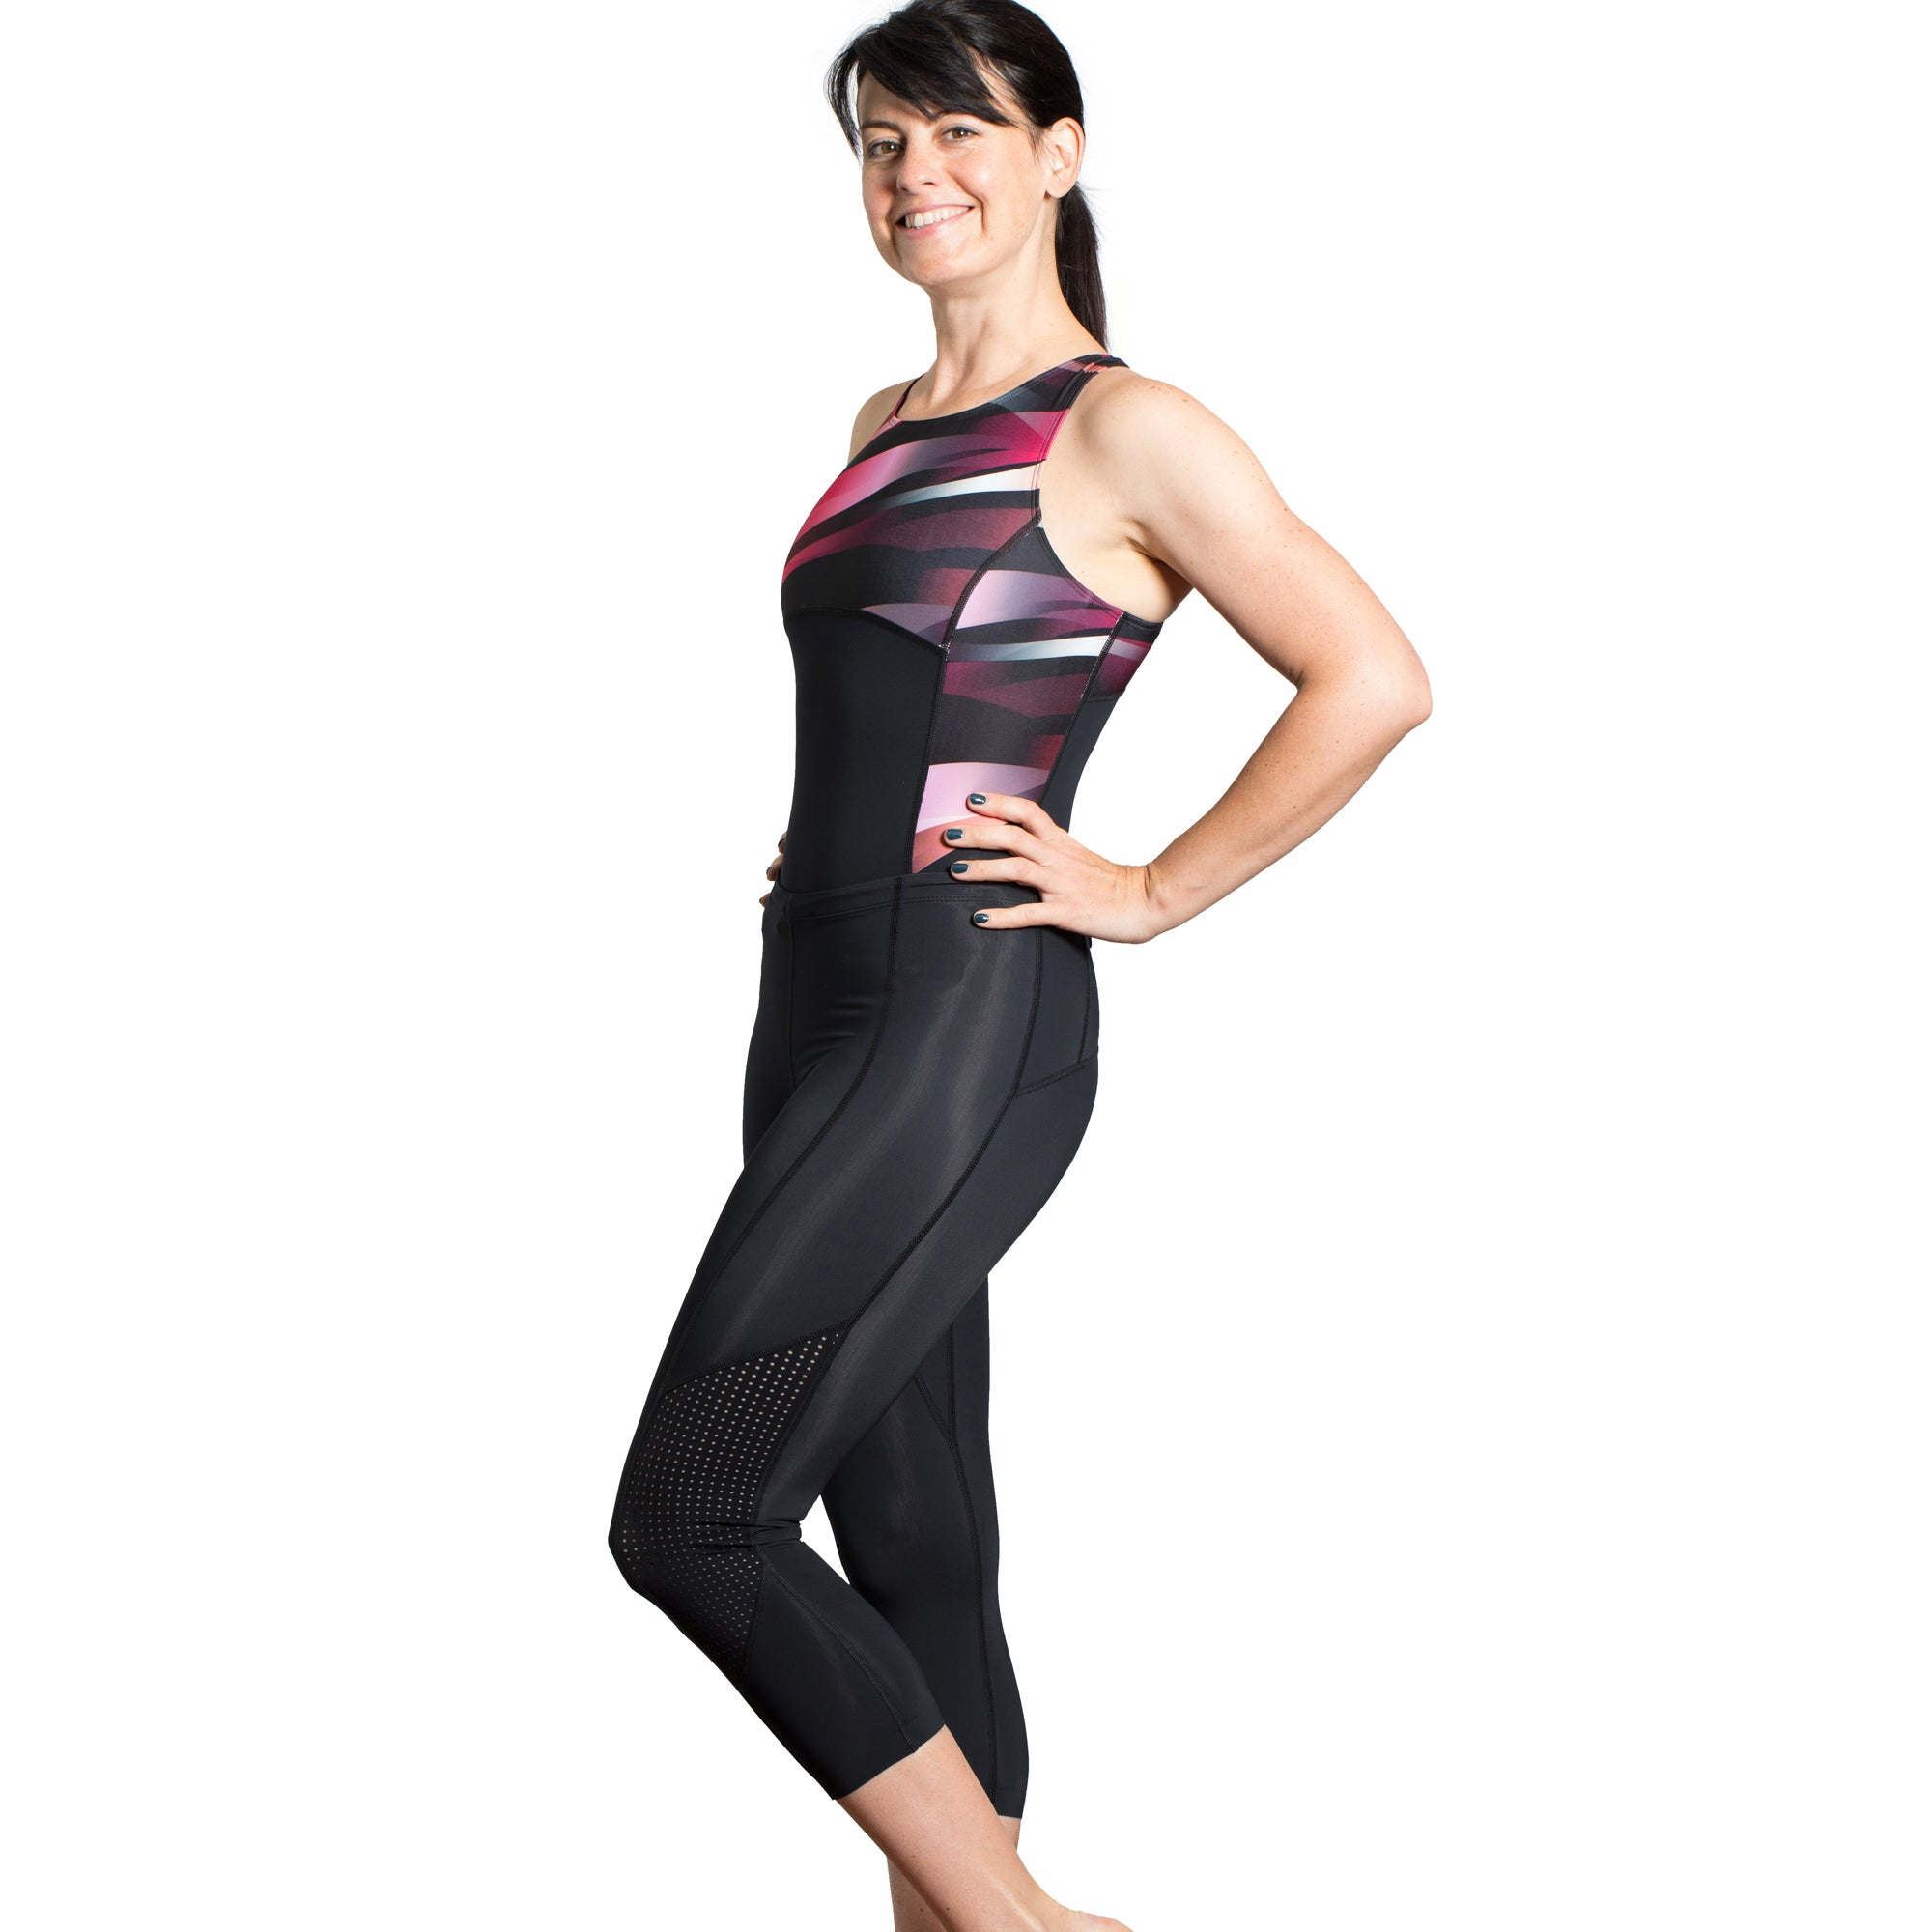 This trisuit double up as an over the knee swimsuit